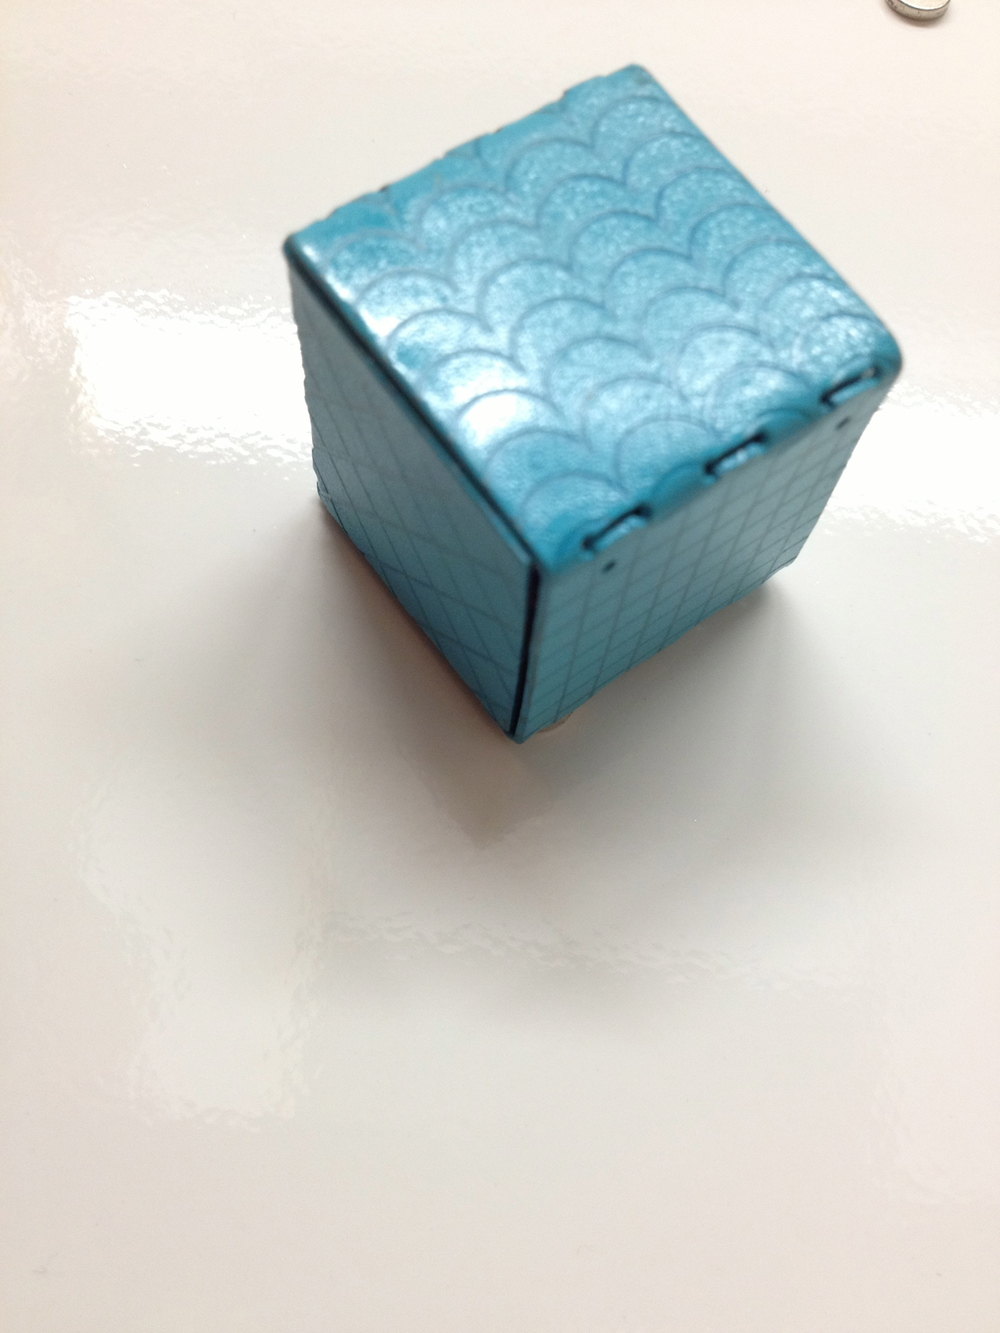 I made this cube out of steel, spray painted it, and then etched a different pattern on each side